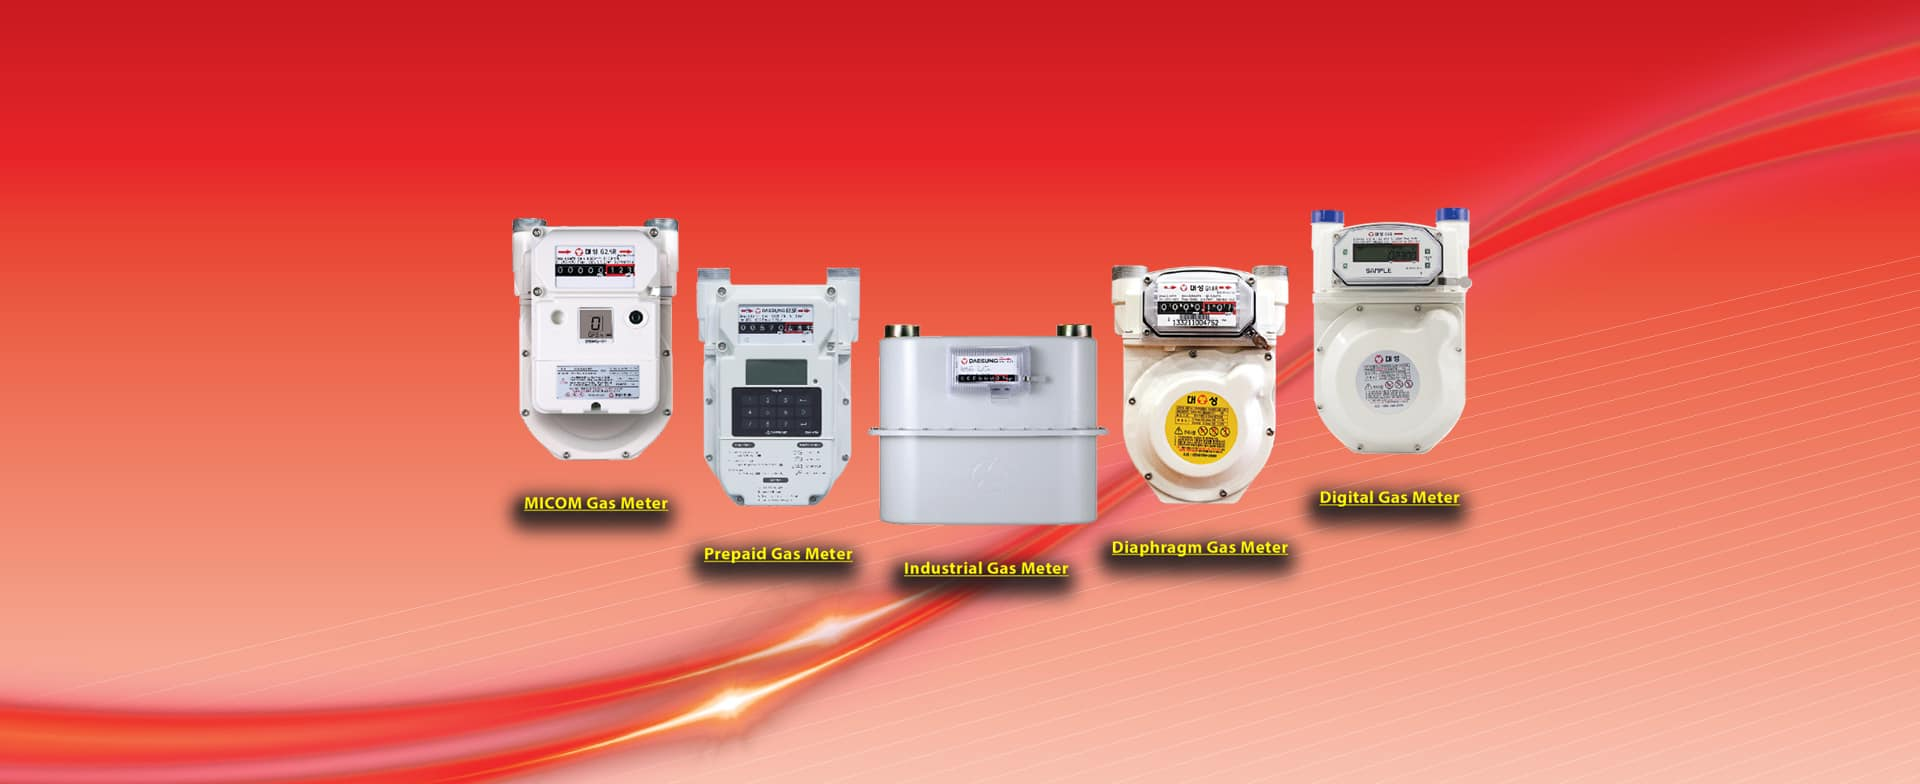 list of gas meter products